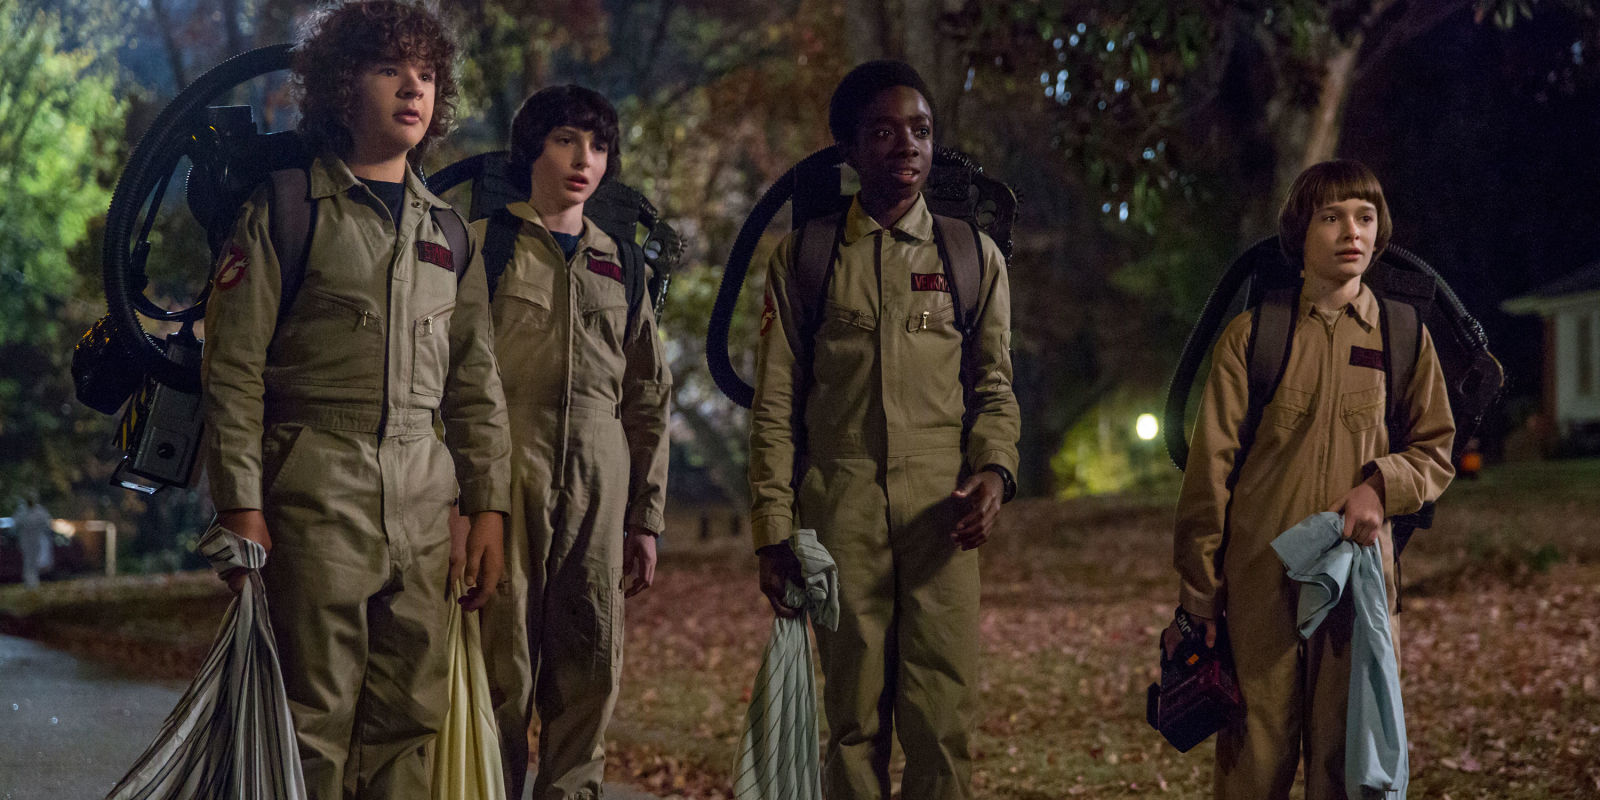 Gaten Matarazzo as Dustin, Finn Wolfhard as Mike, Caleb McLaughlin as Lucas, and Noah Schnapp as Will Byers dressed as Ghostbusters in STRANGER THINGS 2 (2017)